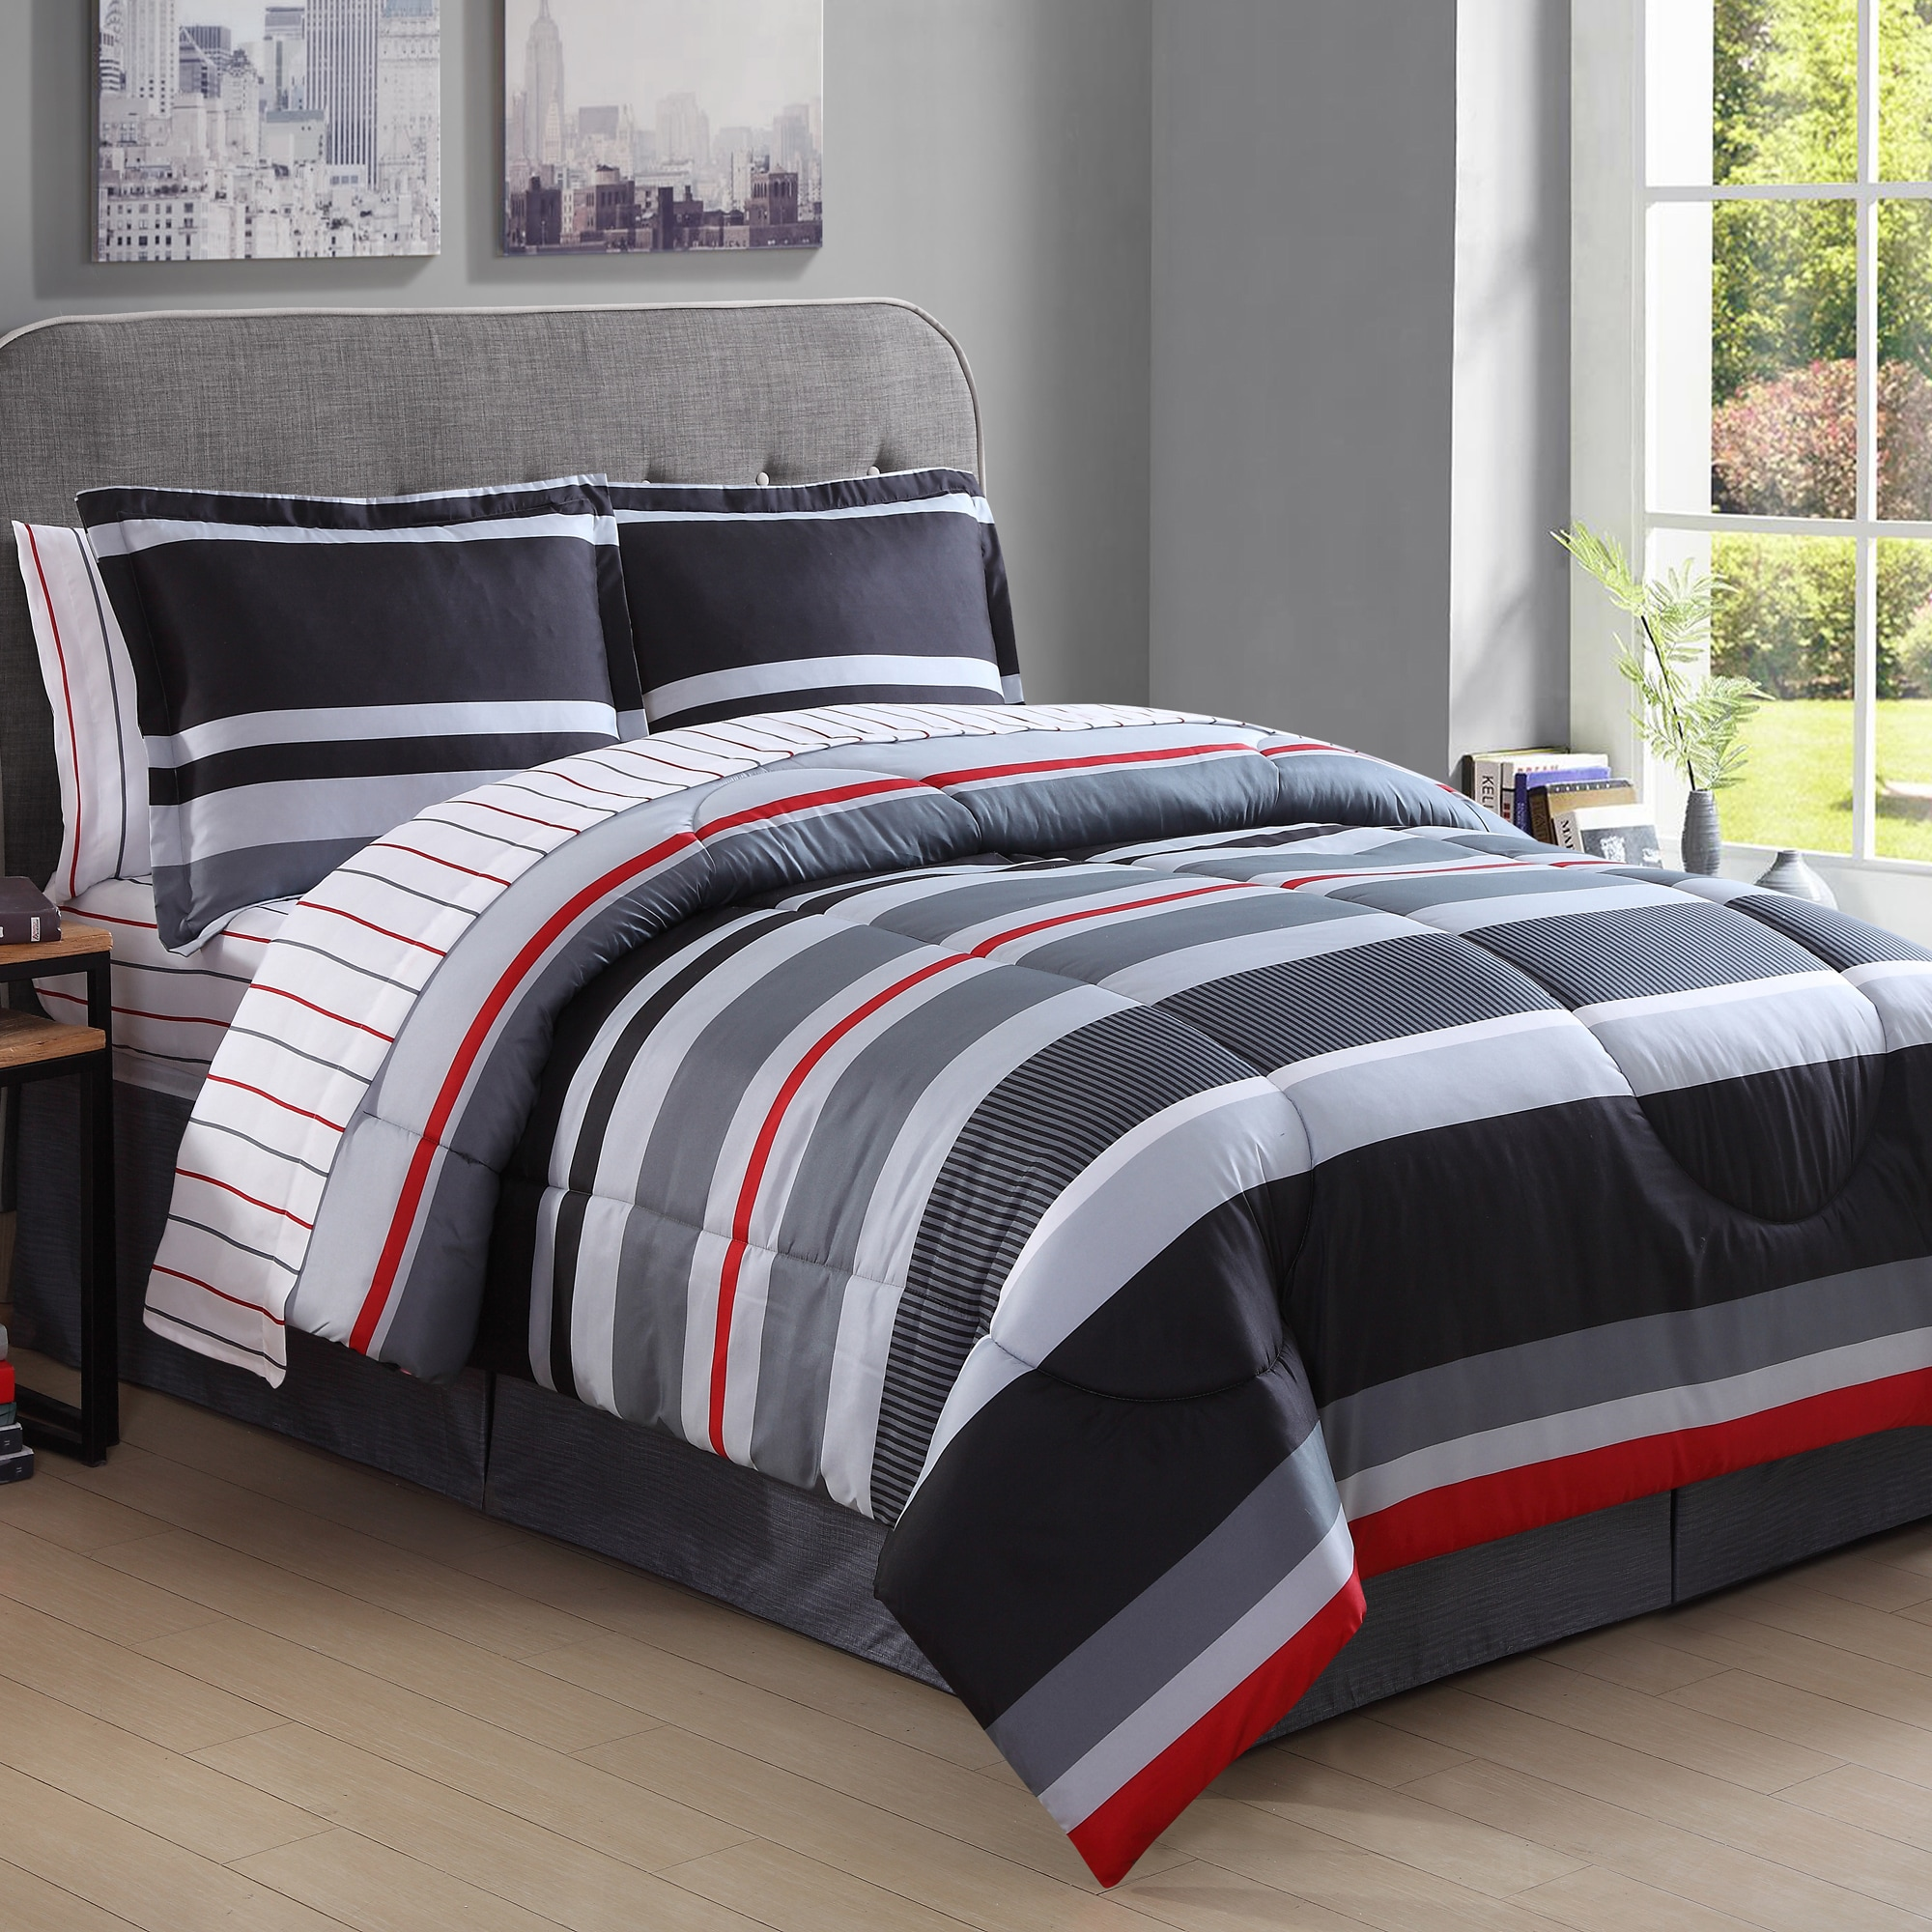 comforter geometric bed charcoal yellow find quotations on with madison set grey bedding cheap shopping king guides get a deals park bag embroidery in stripes and